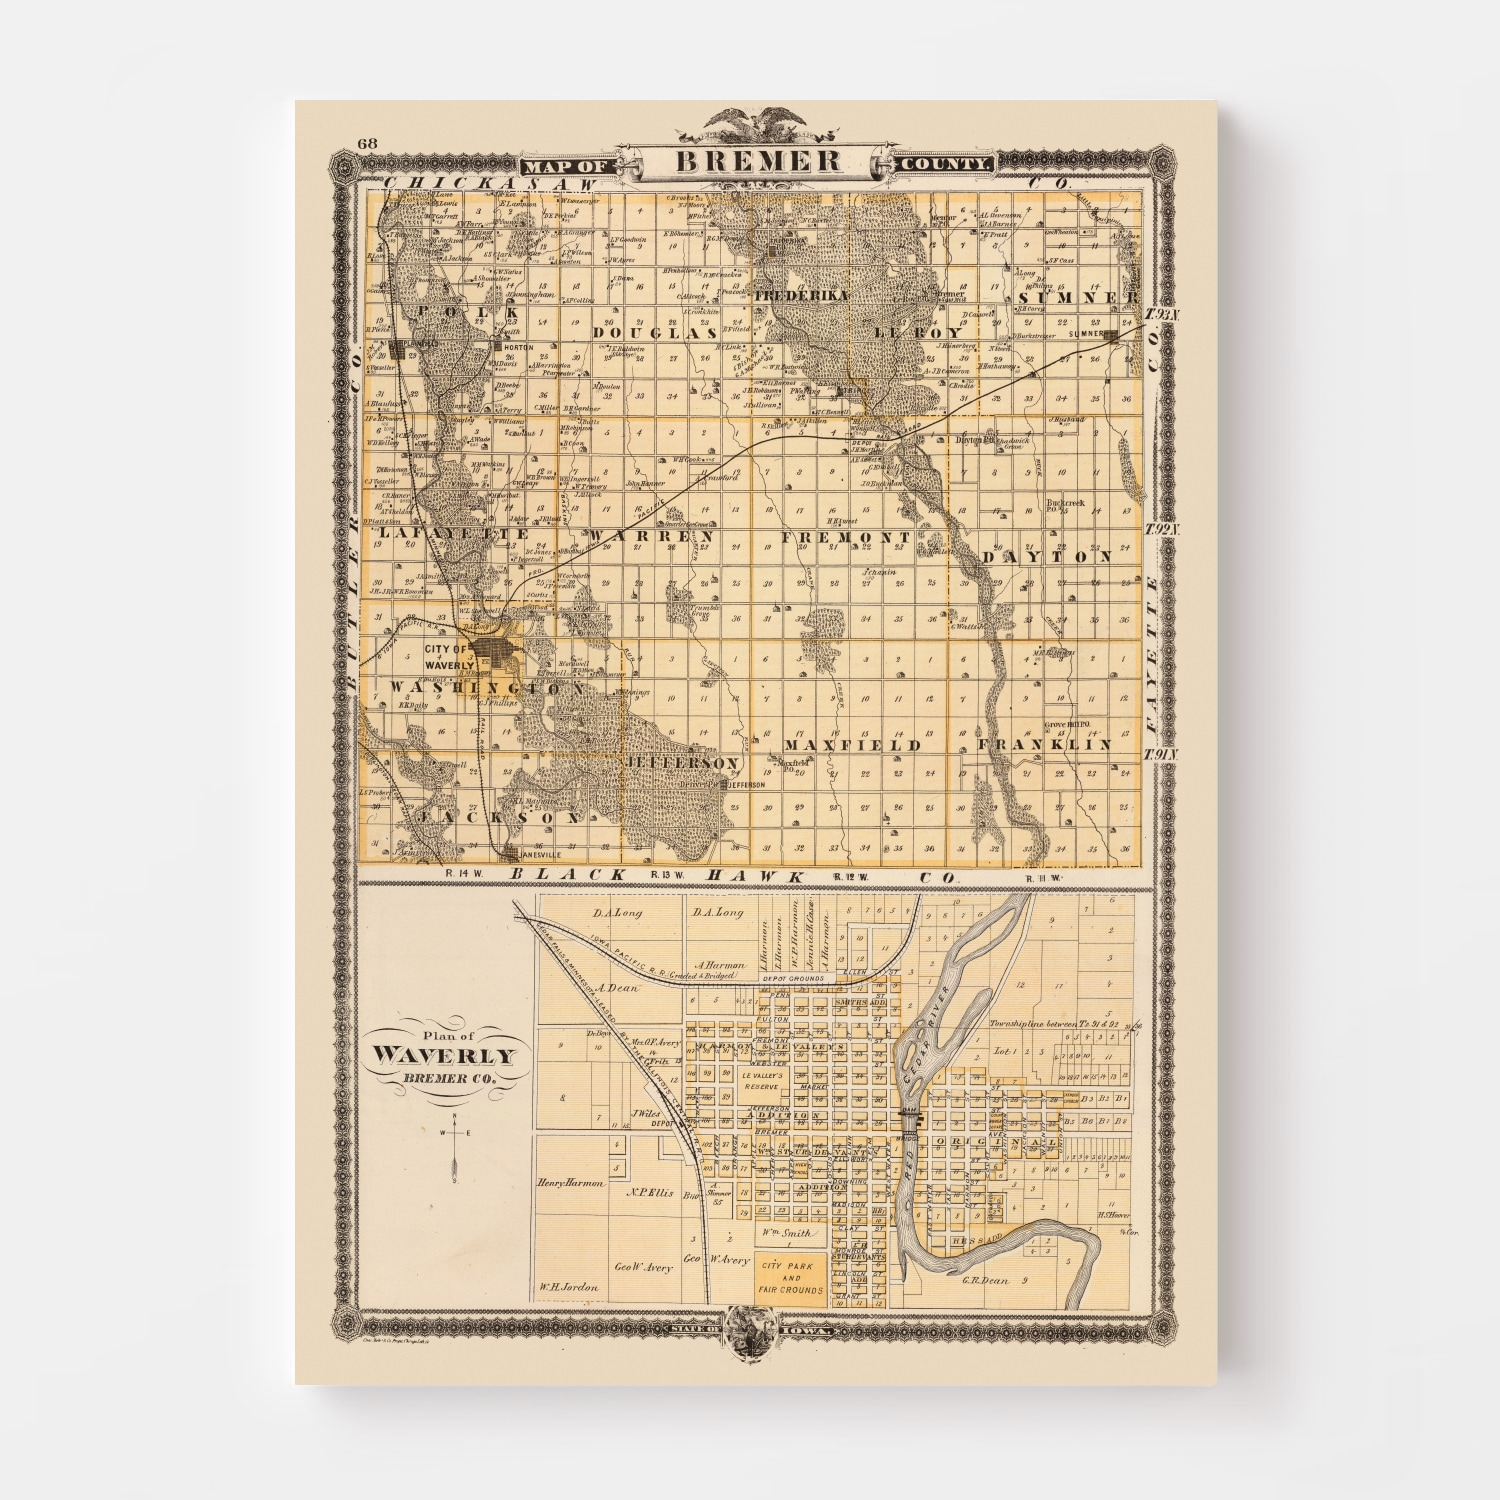 Vintage Map of Bremer County Iowa, 1875